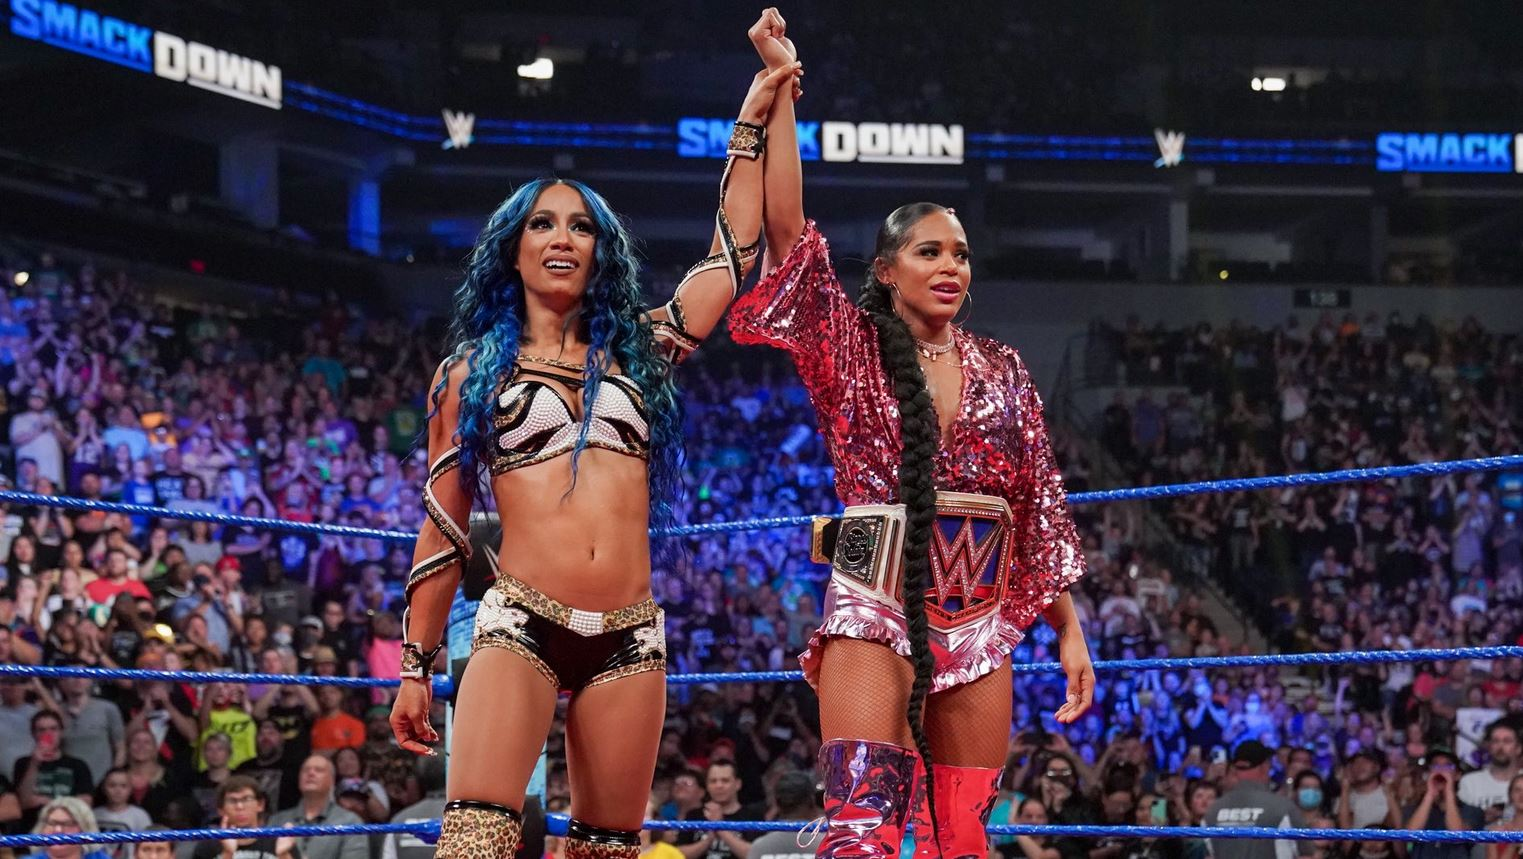 smackdown in a nutshell BOSS TIME SASHA BANKS